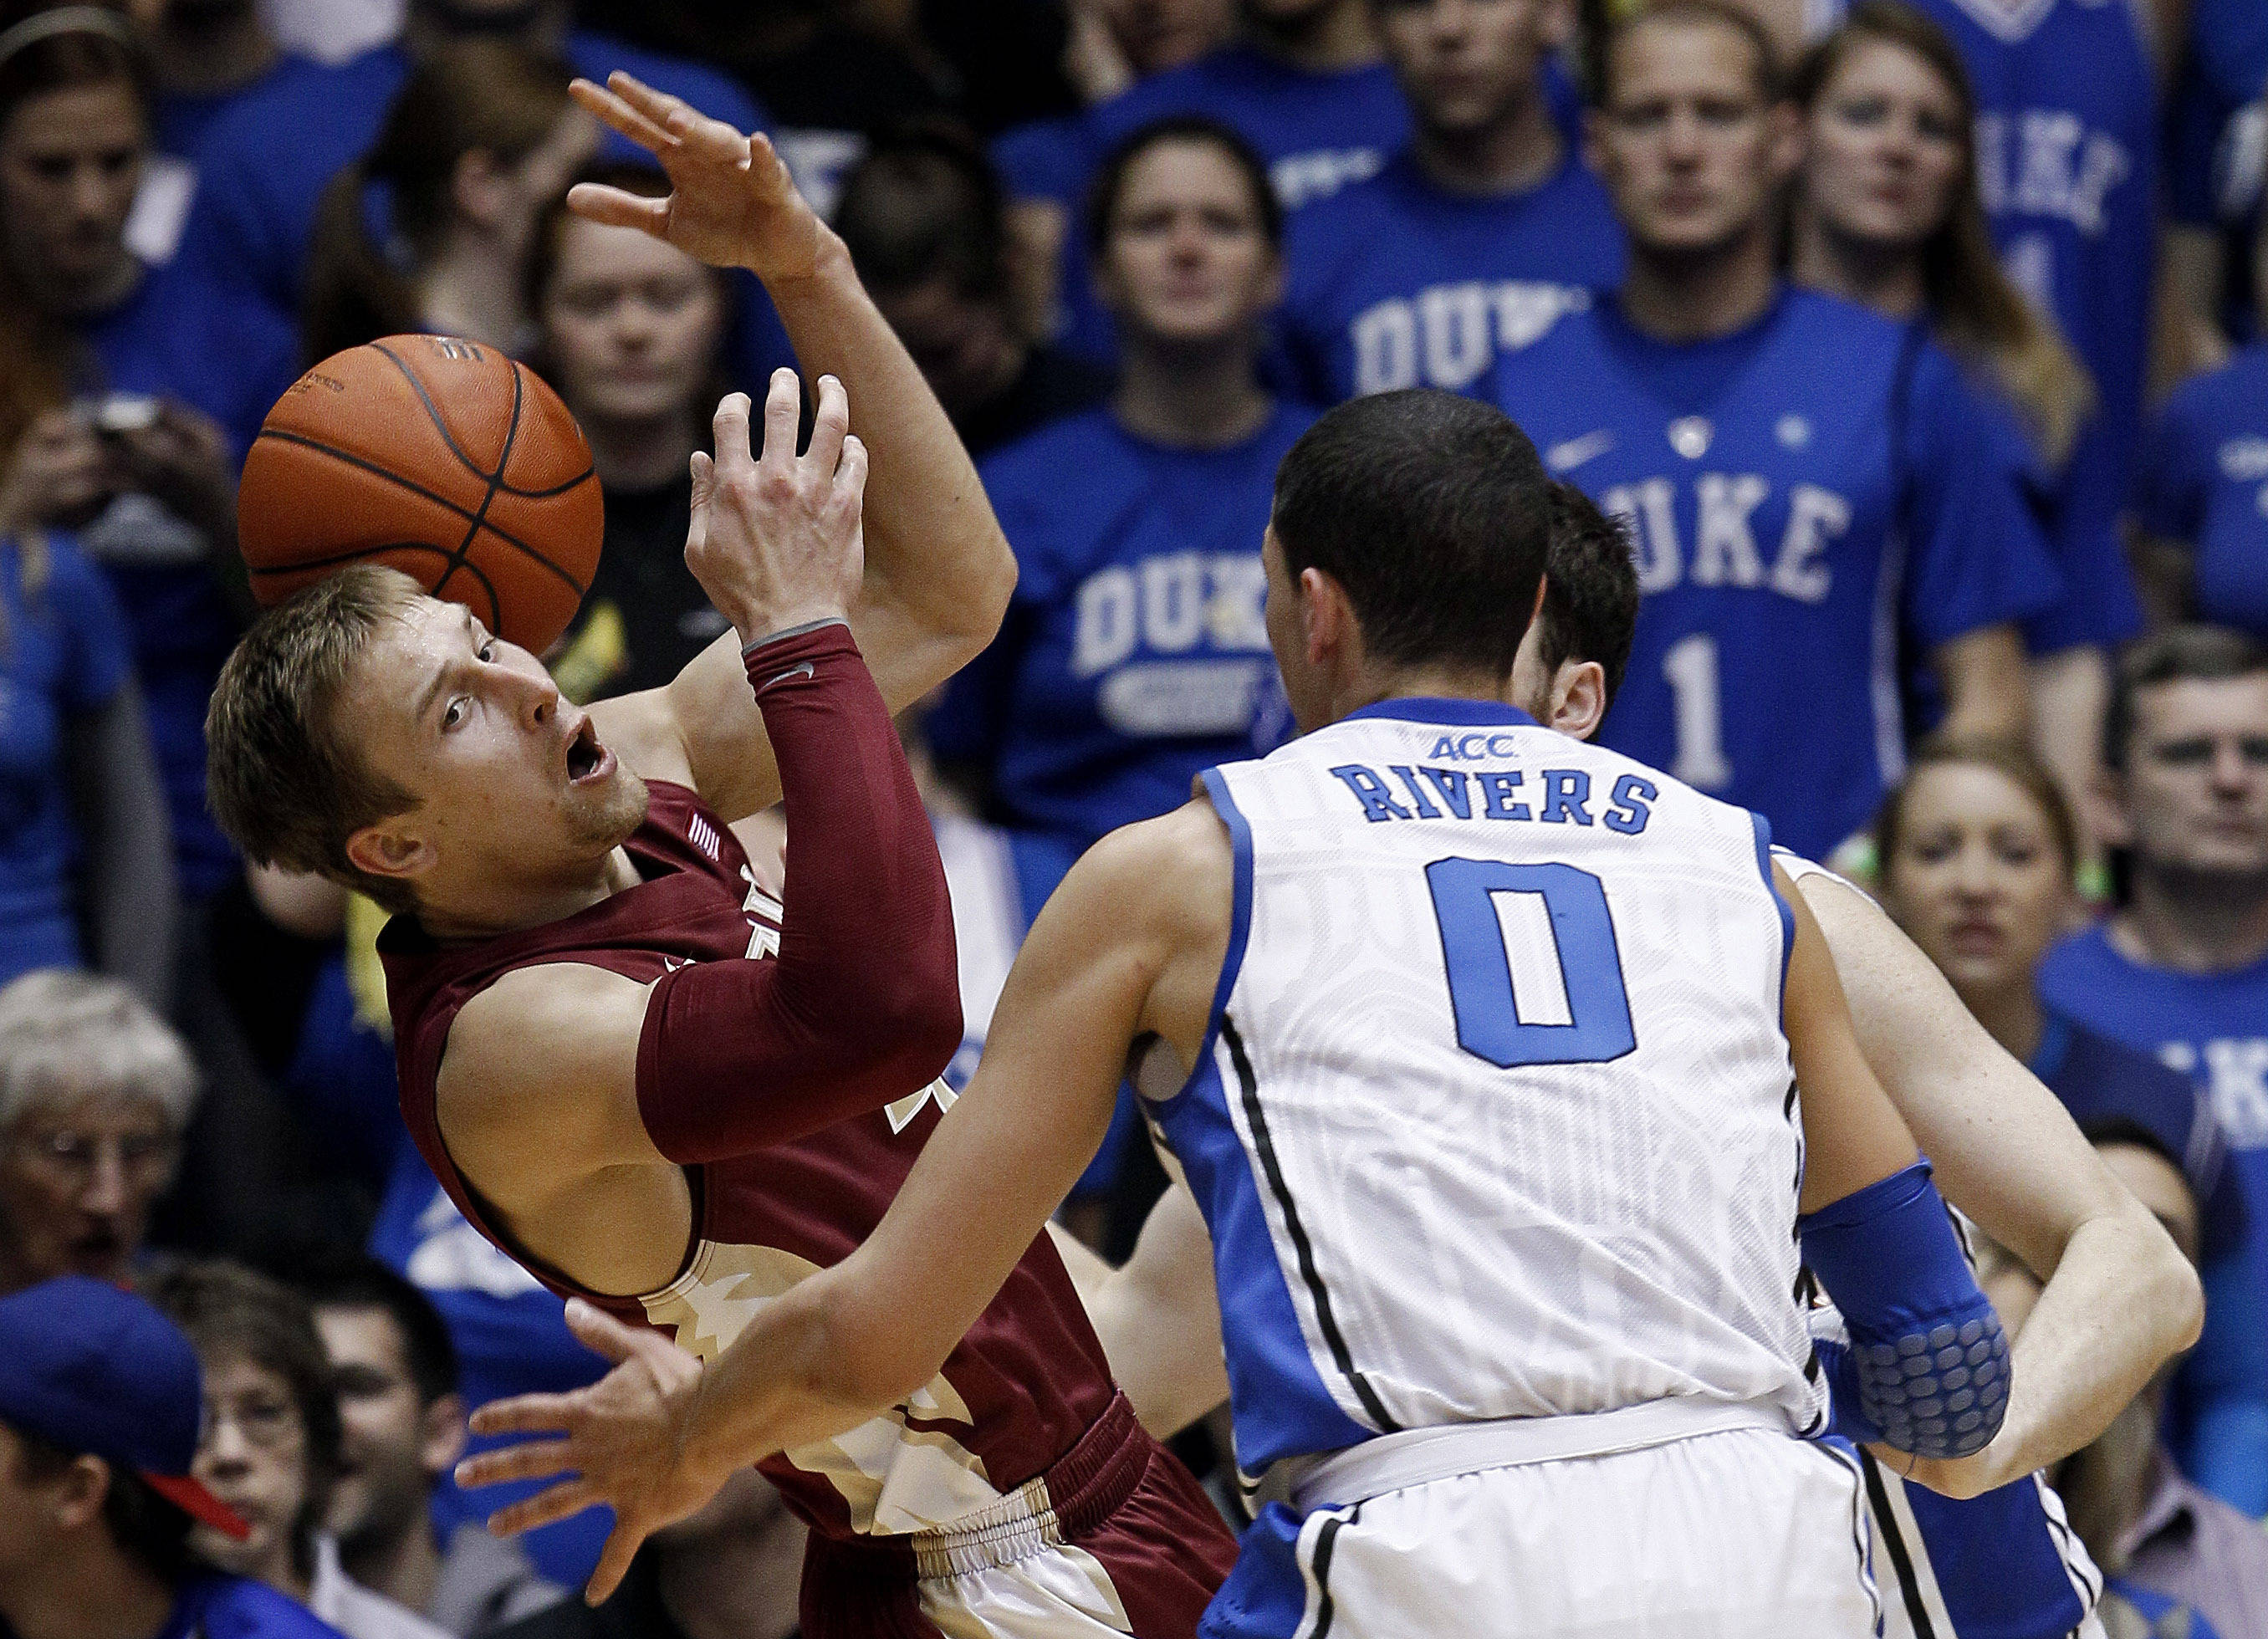 Florida State's Deividas Dulkys, left, tries to hold onto the ball as Duke's Austin Rivers (0) and Ryan Kelly, rear, apply pressure during the first half. (AP Photo/Gerry Broome)